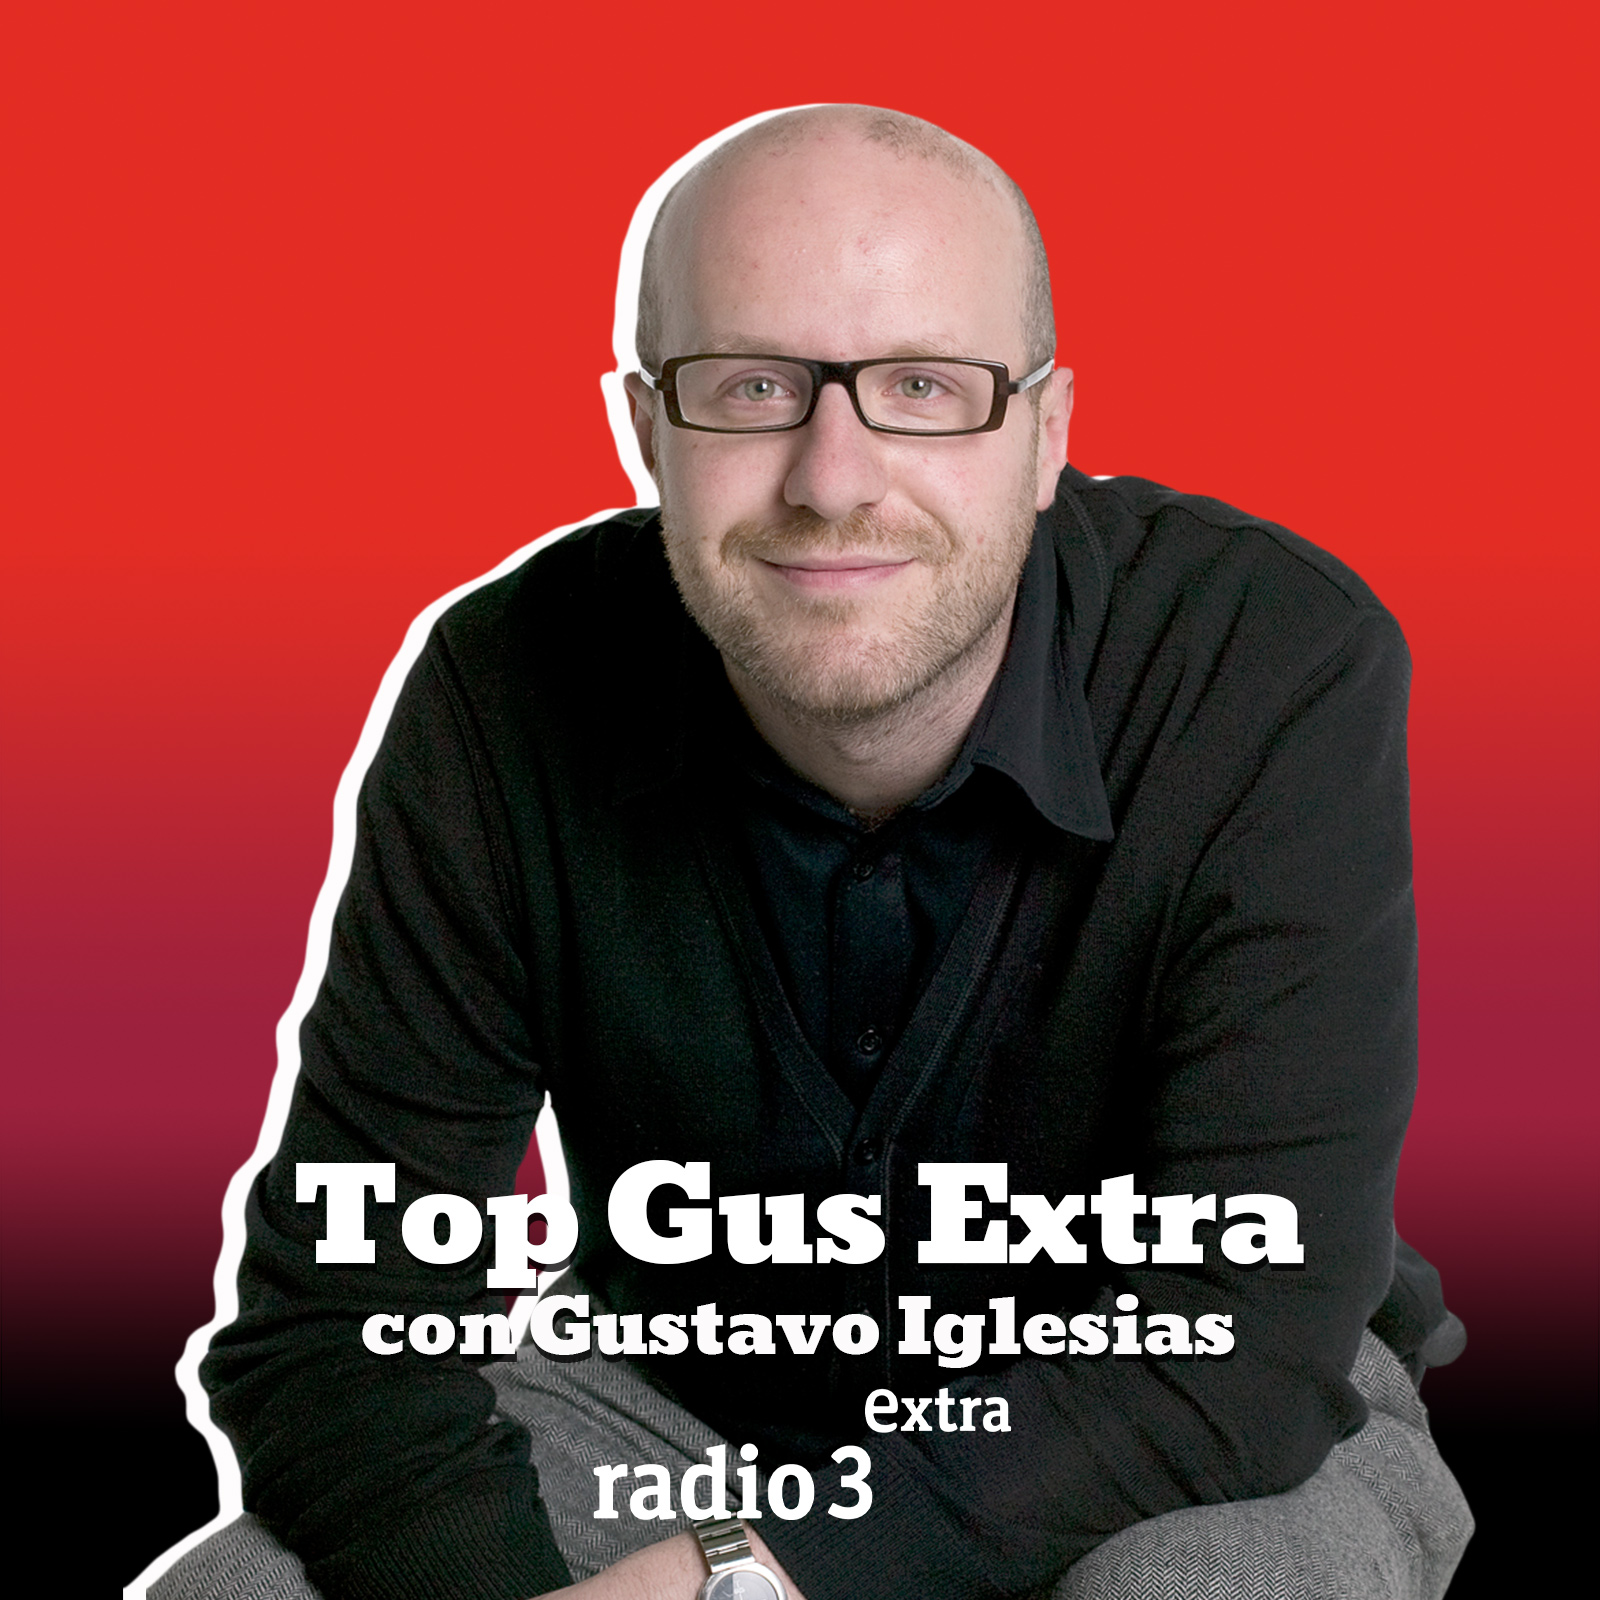 Top Gus Extra